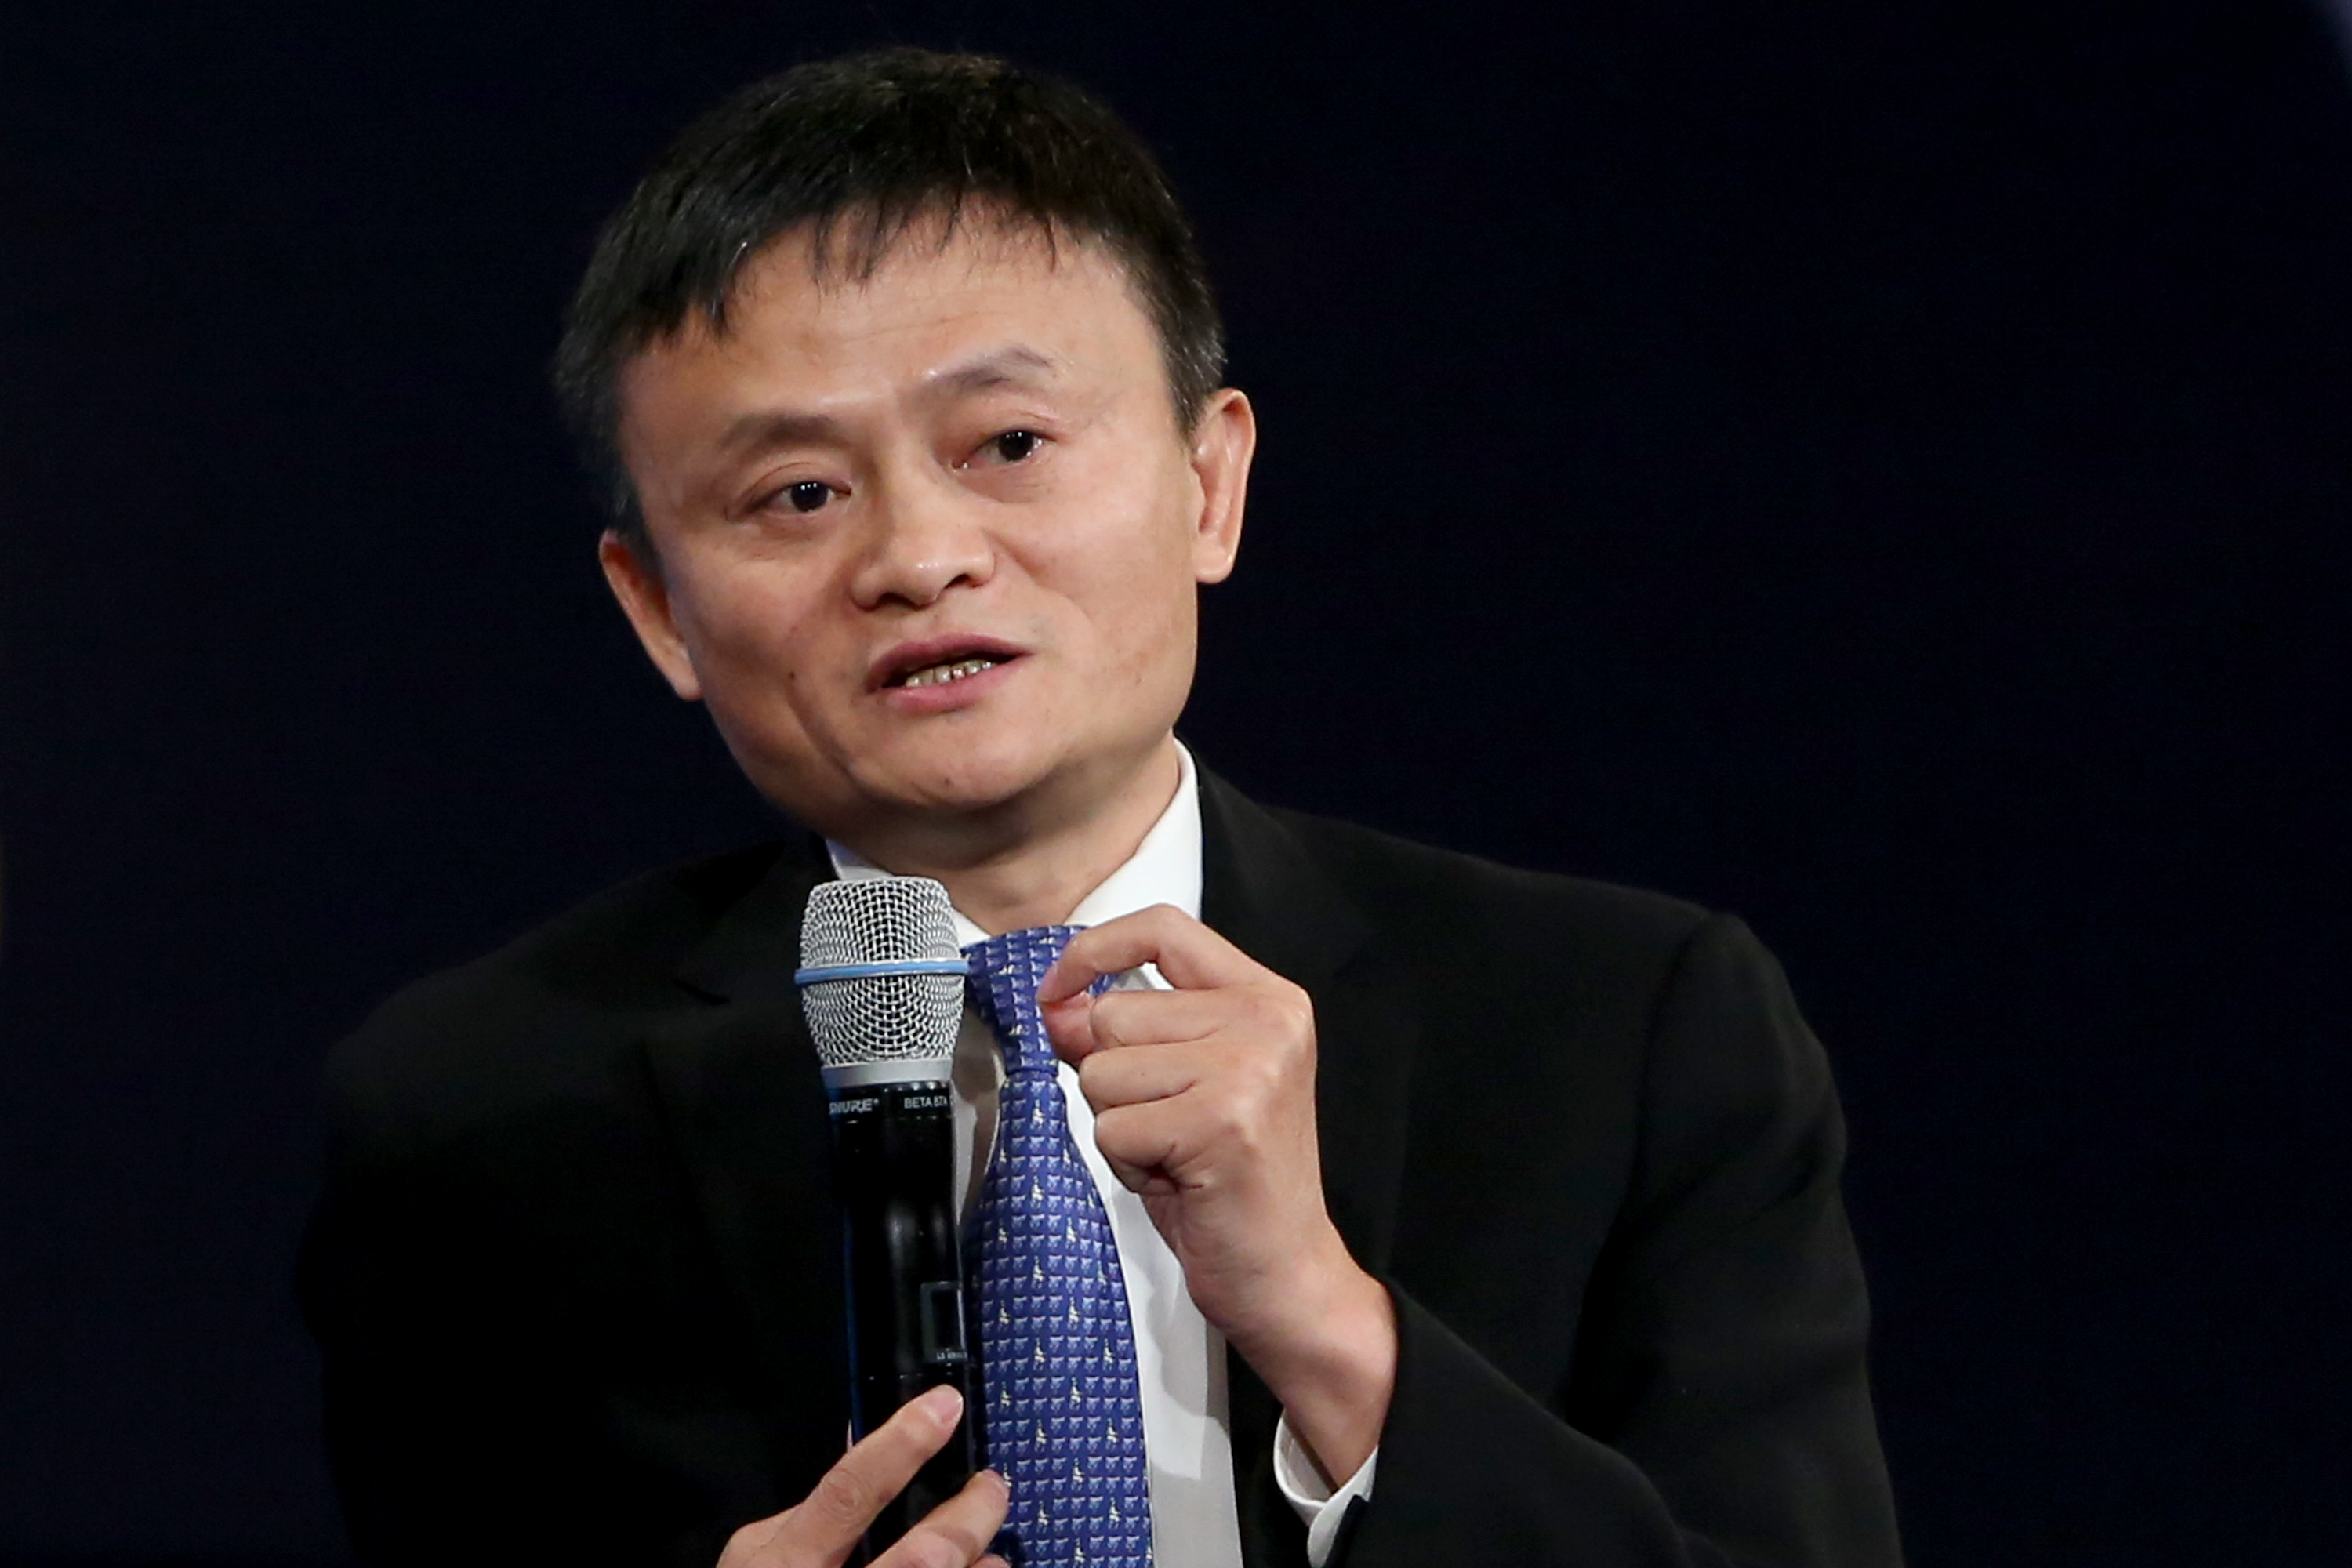 Jack Ma at the Clinton Global Initiative Annual Meeting in New York City on Sept. 29, 2015.